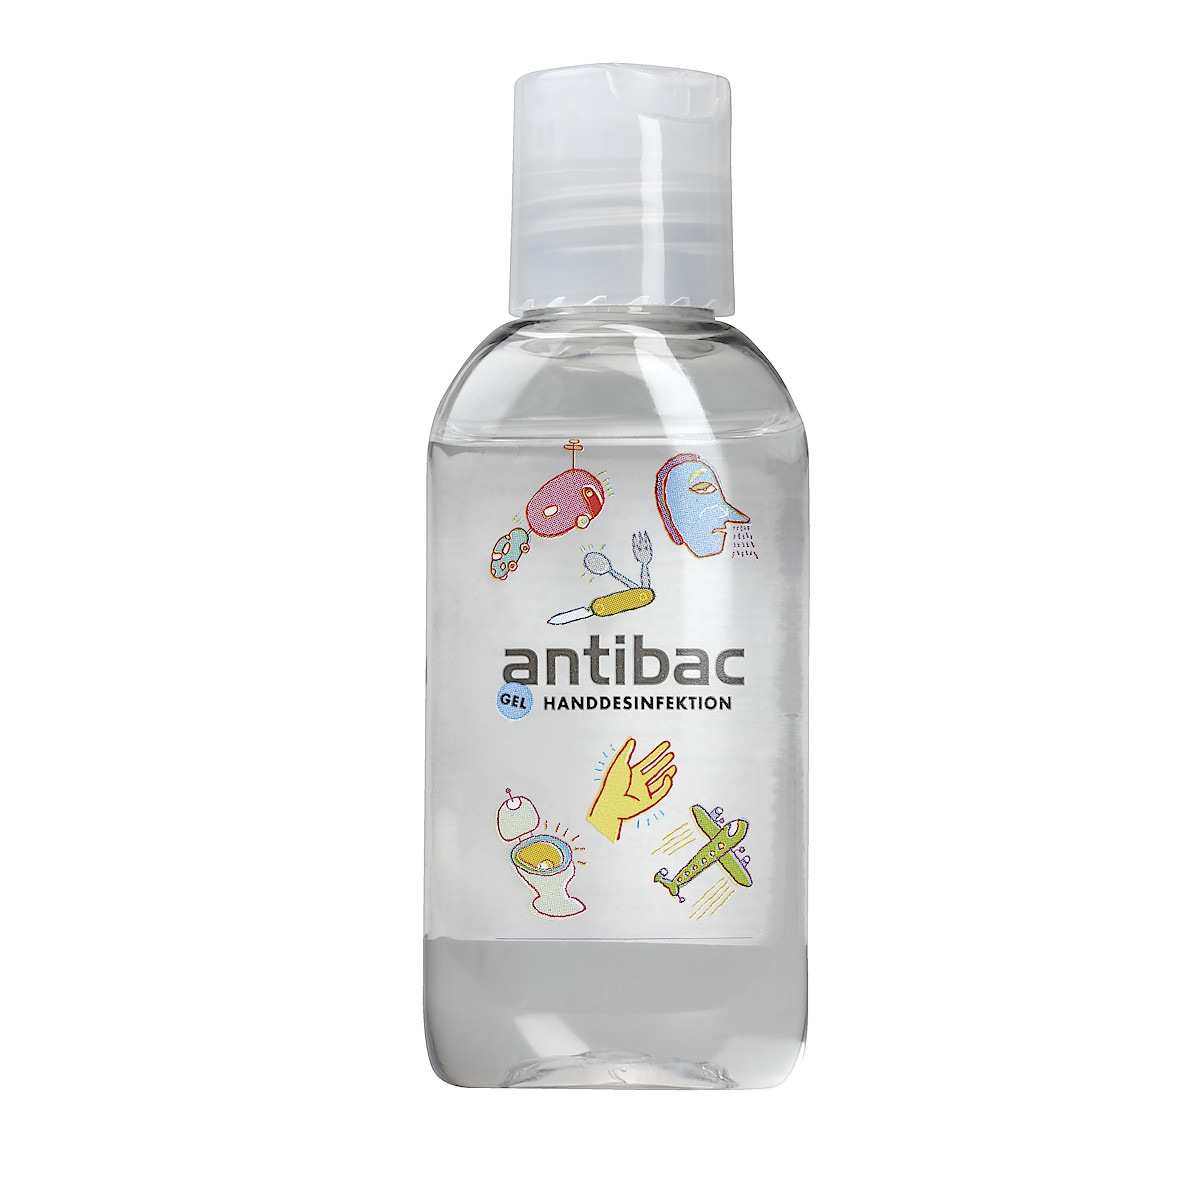 Handsprit Antibac gel